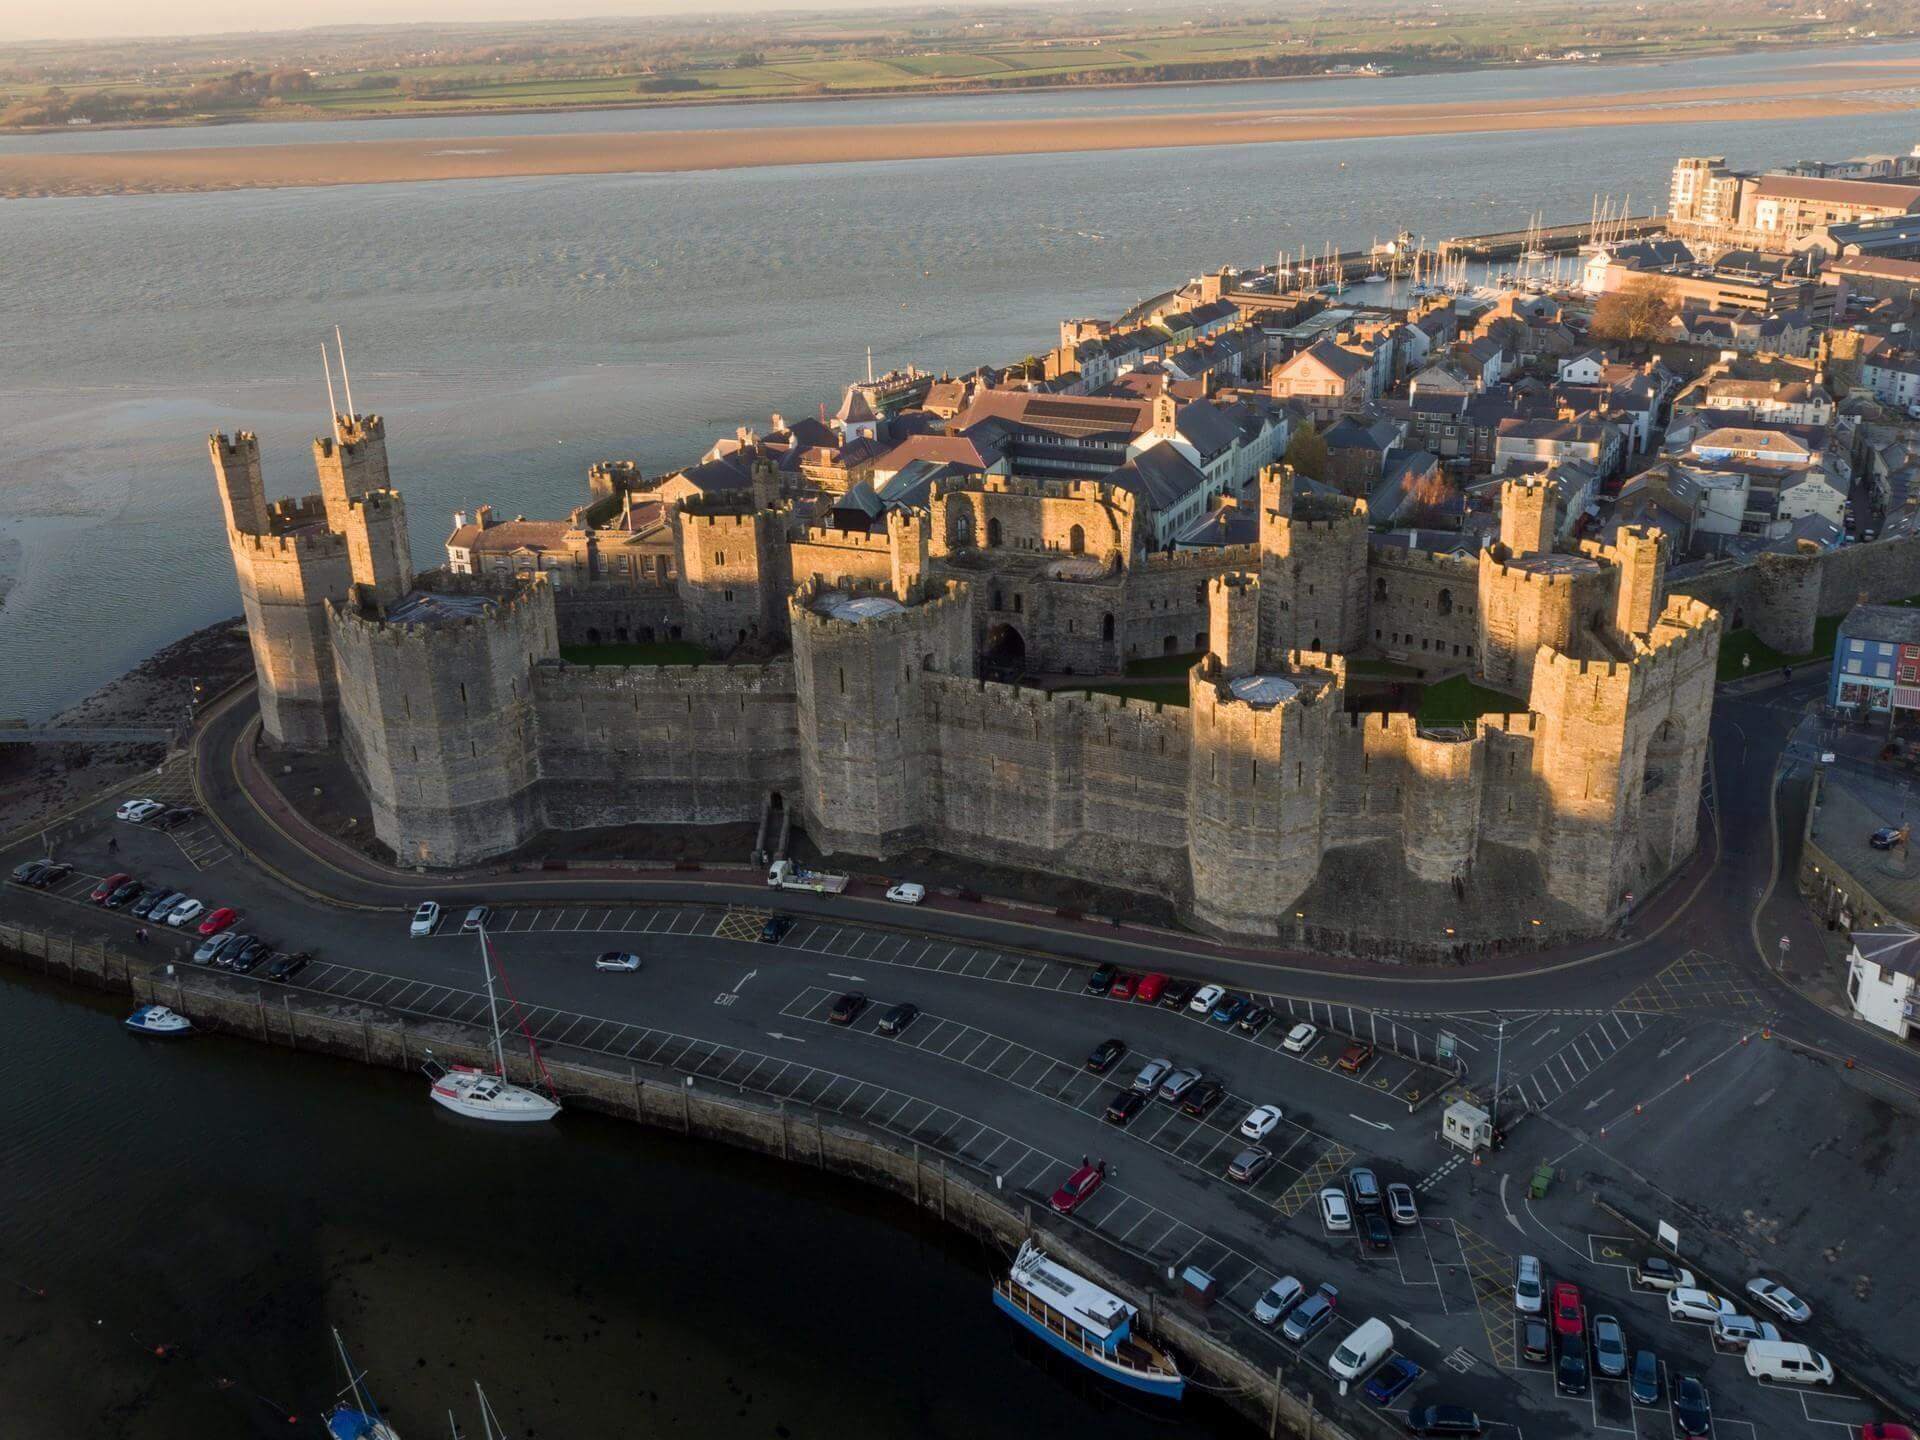 A view of Caernarfon Castle and the river from above.